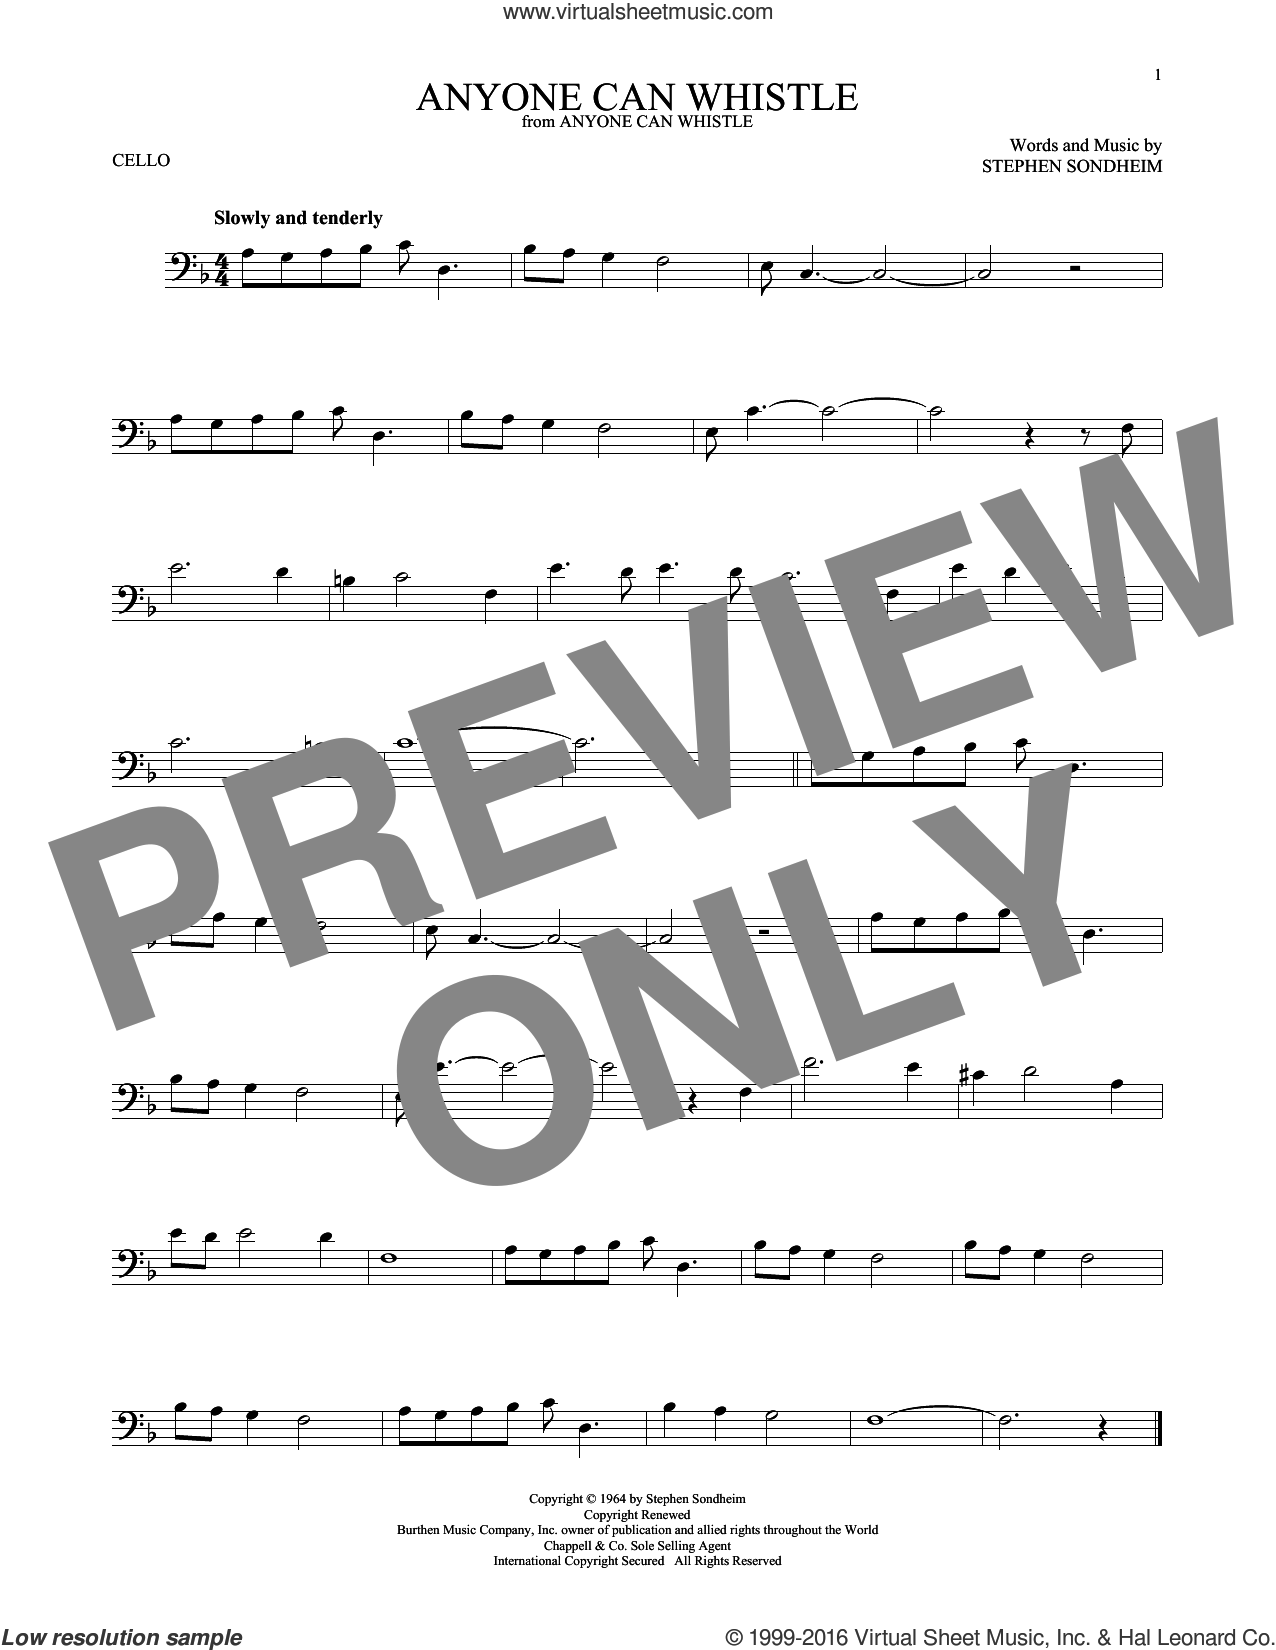 Anyone Can Whistle sheet music for cello solo by Stephen Sondheim, intermediate skill level